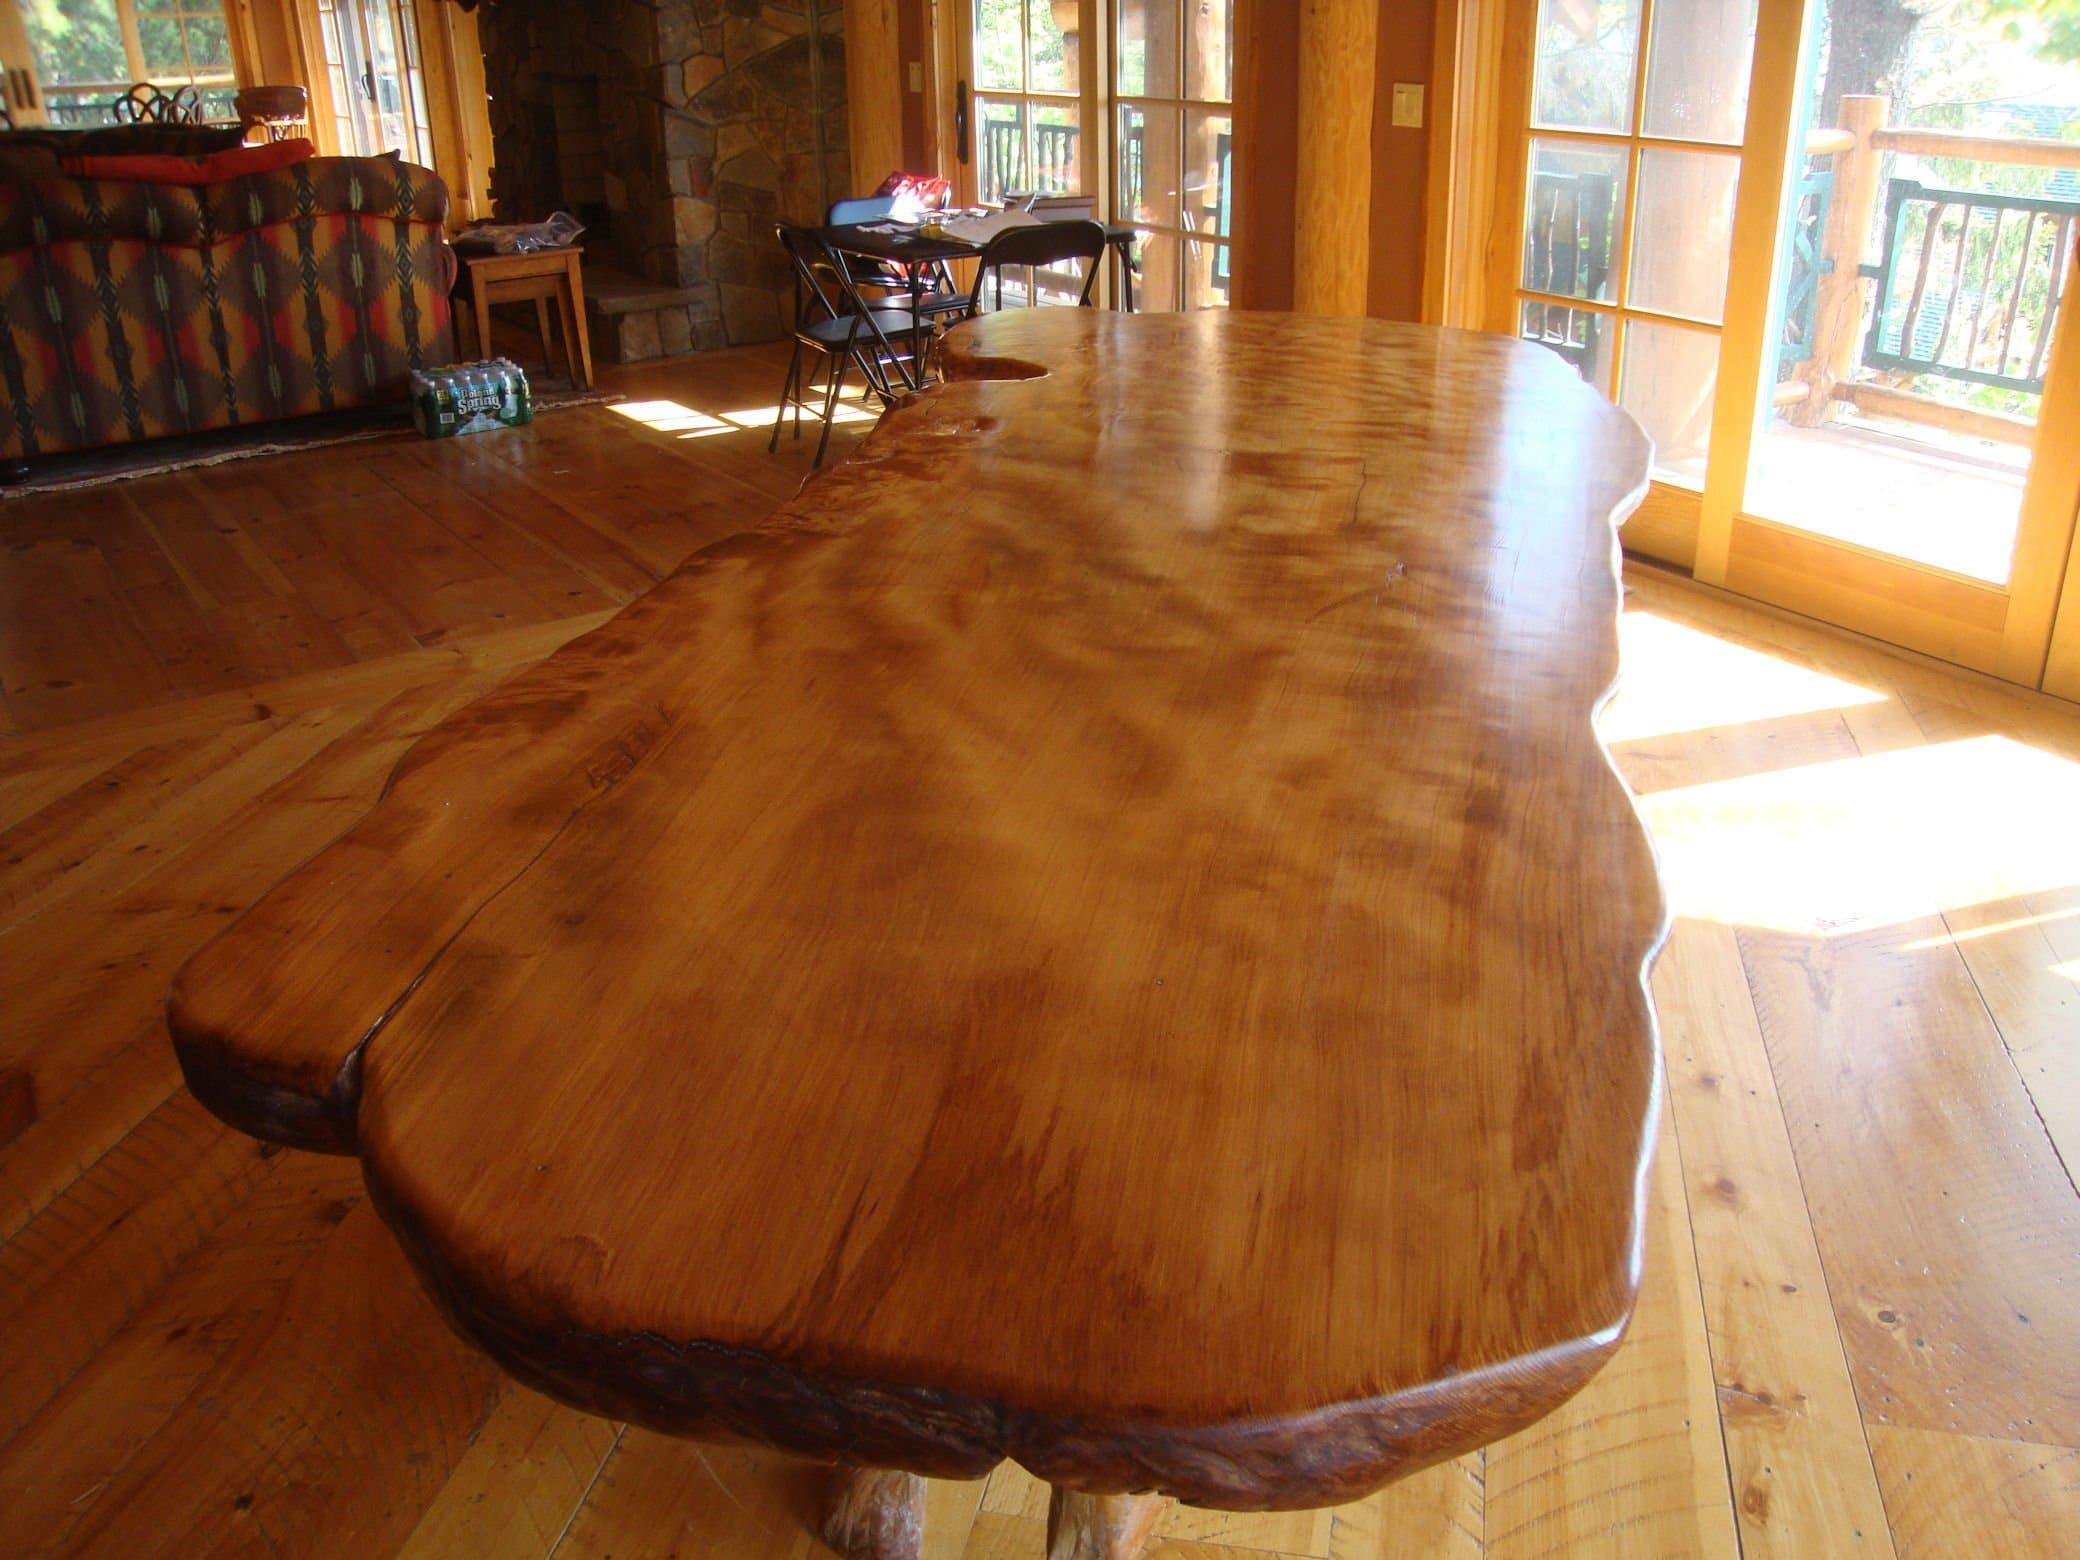 Rustic dining table - live edge wood slabs